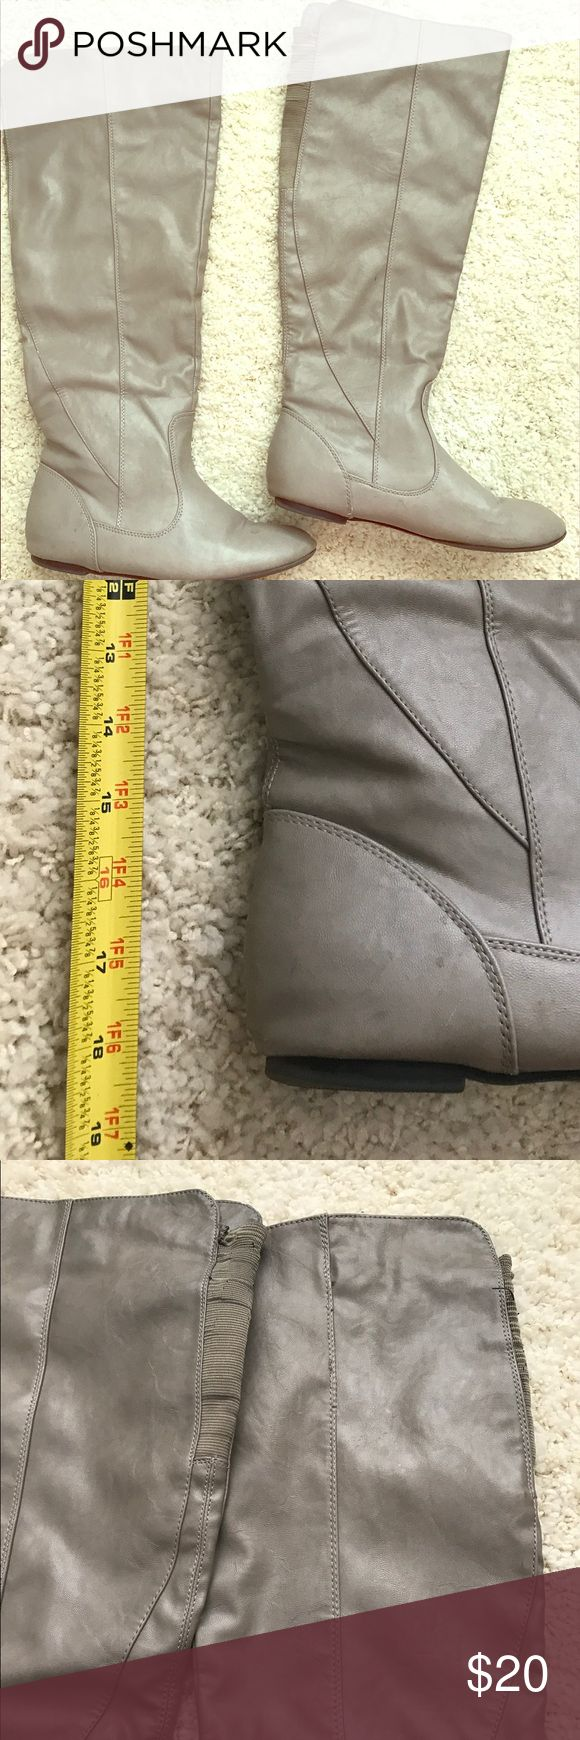 Shoe Dazzle Lina Grey Boots 8.5 A few blemishes but still have some life (see images for flaws). They are super comfortable and true to size. Shoe Dazzle Shoes Winter & Rain Boots